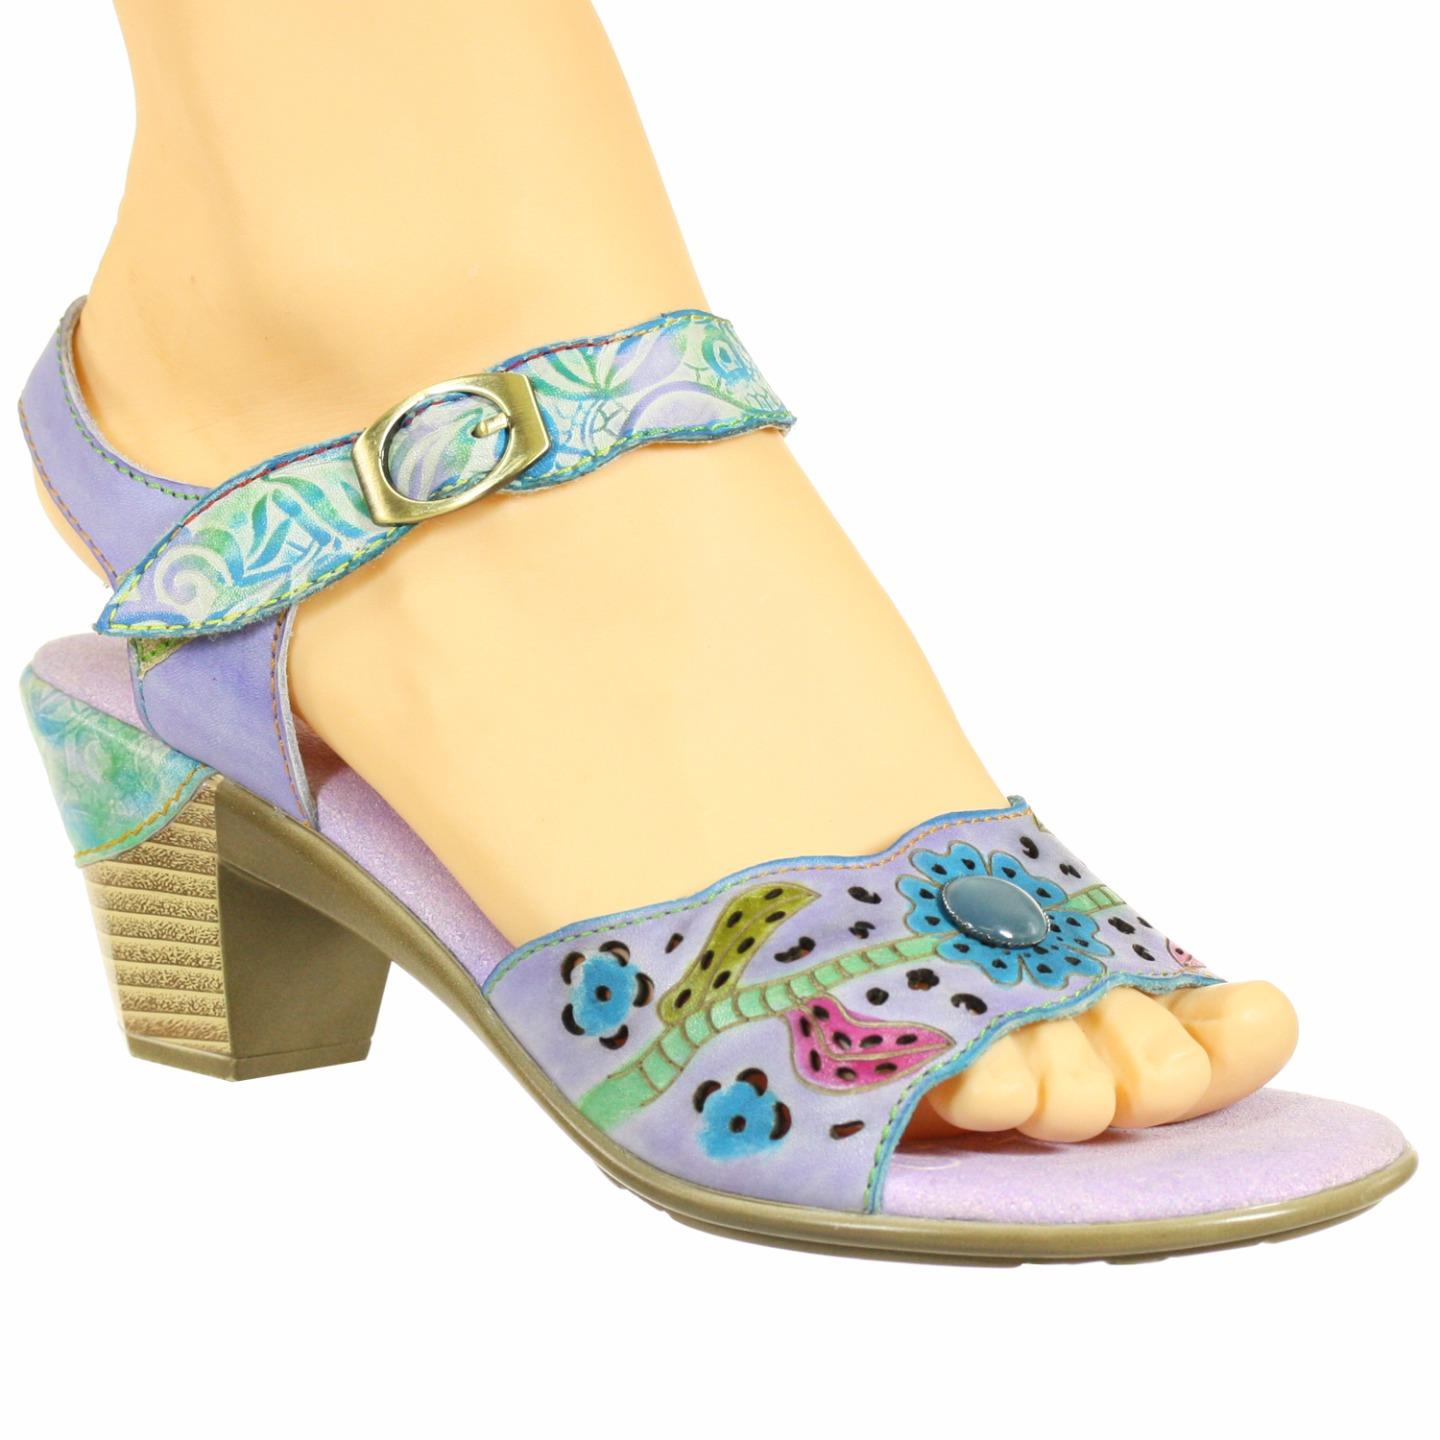 Spring Step L'Artiste Collection Isobel Women's Sandals Lilac Multi EU 37 US 7 by Spring Step